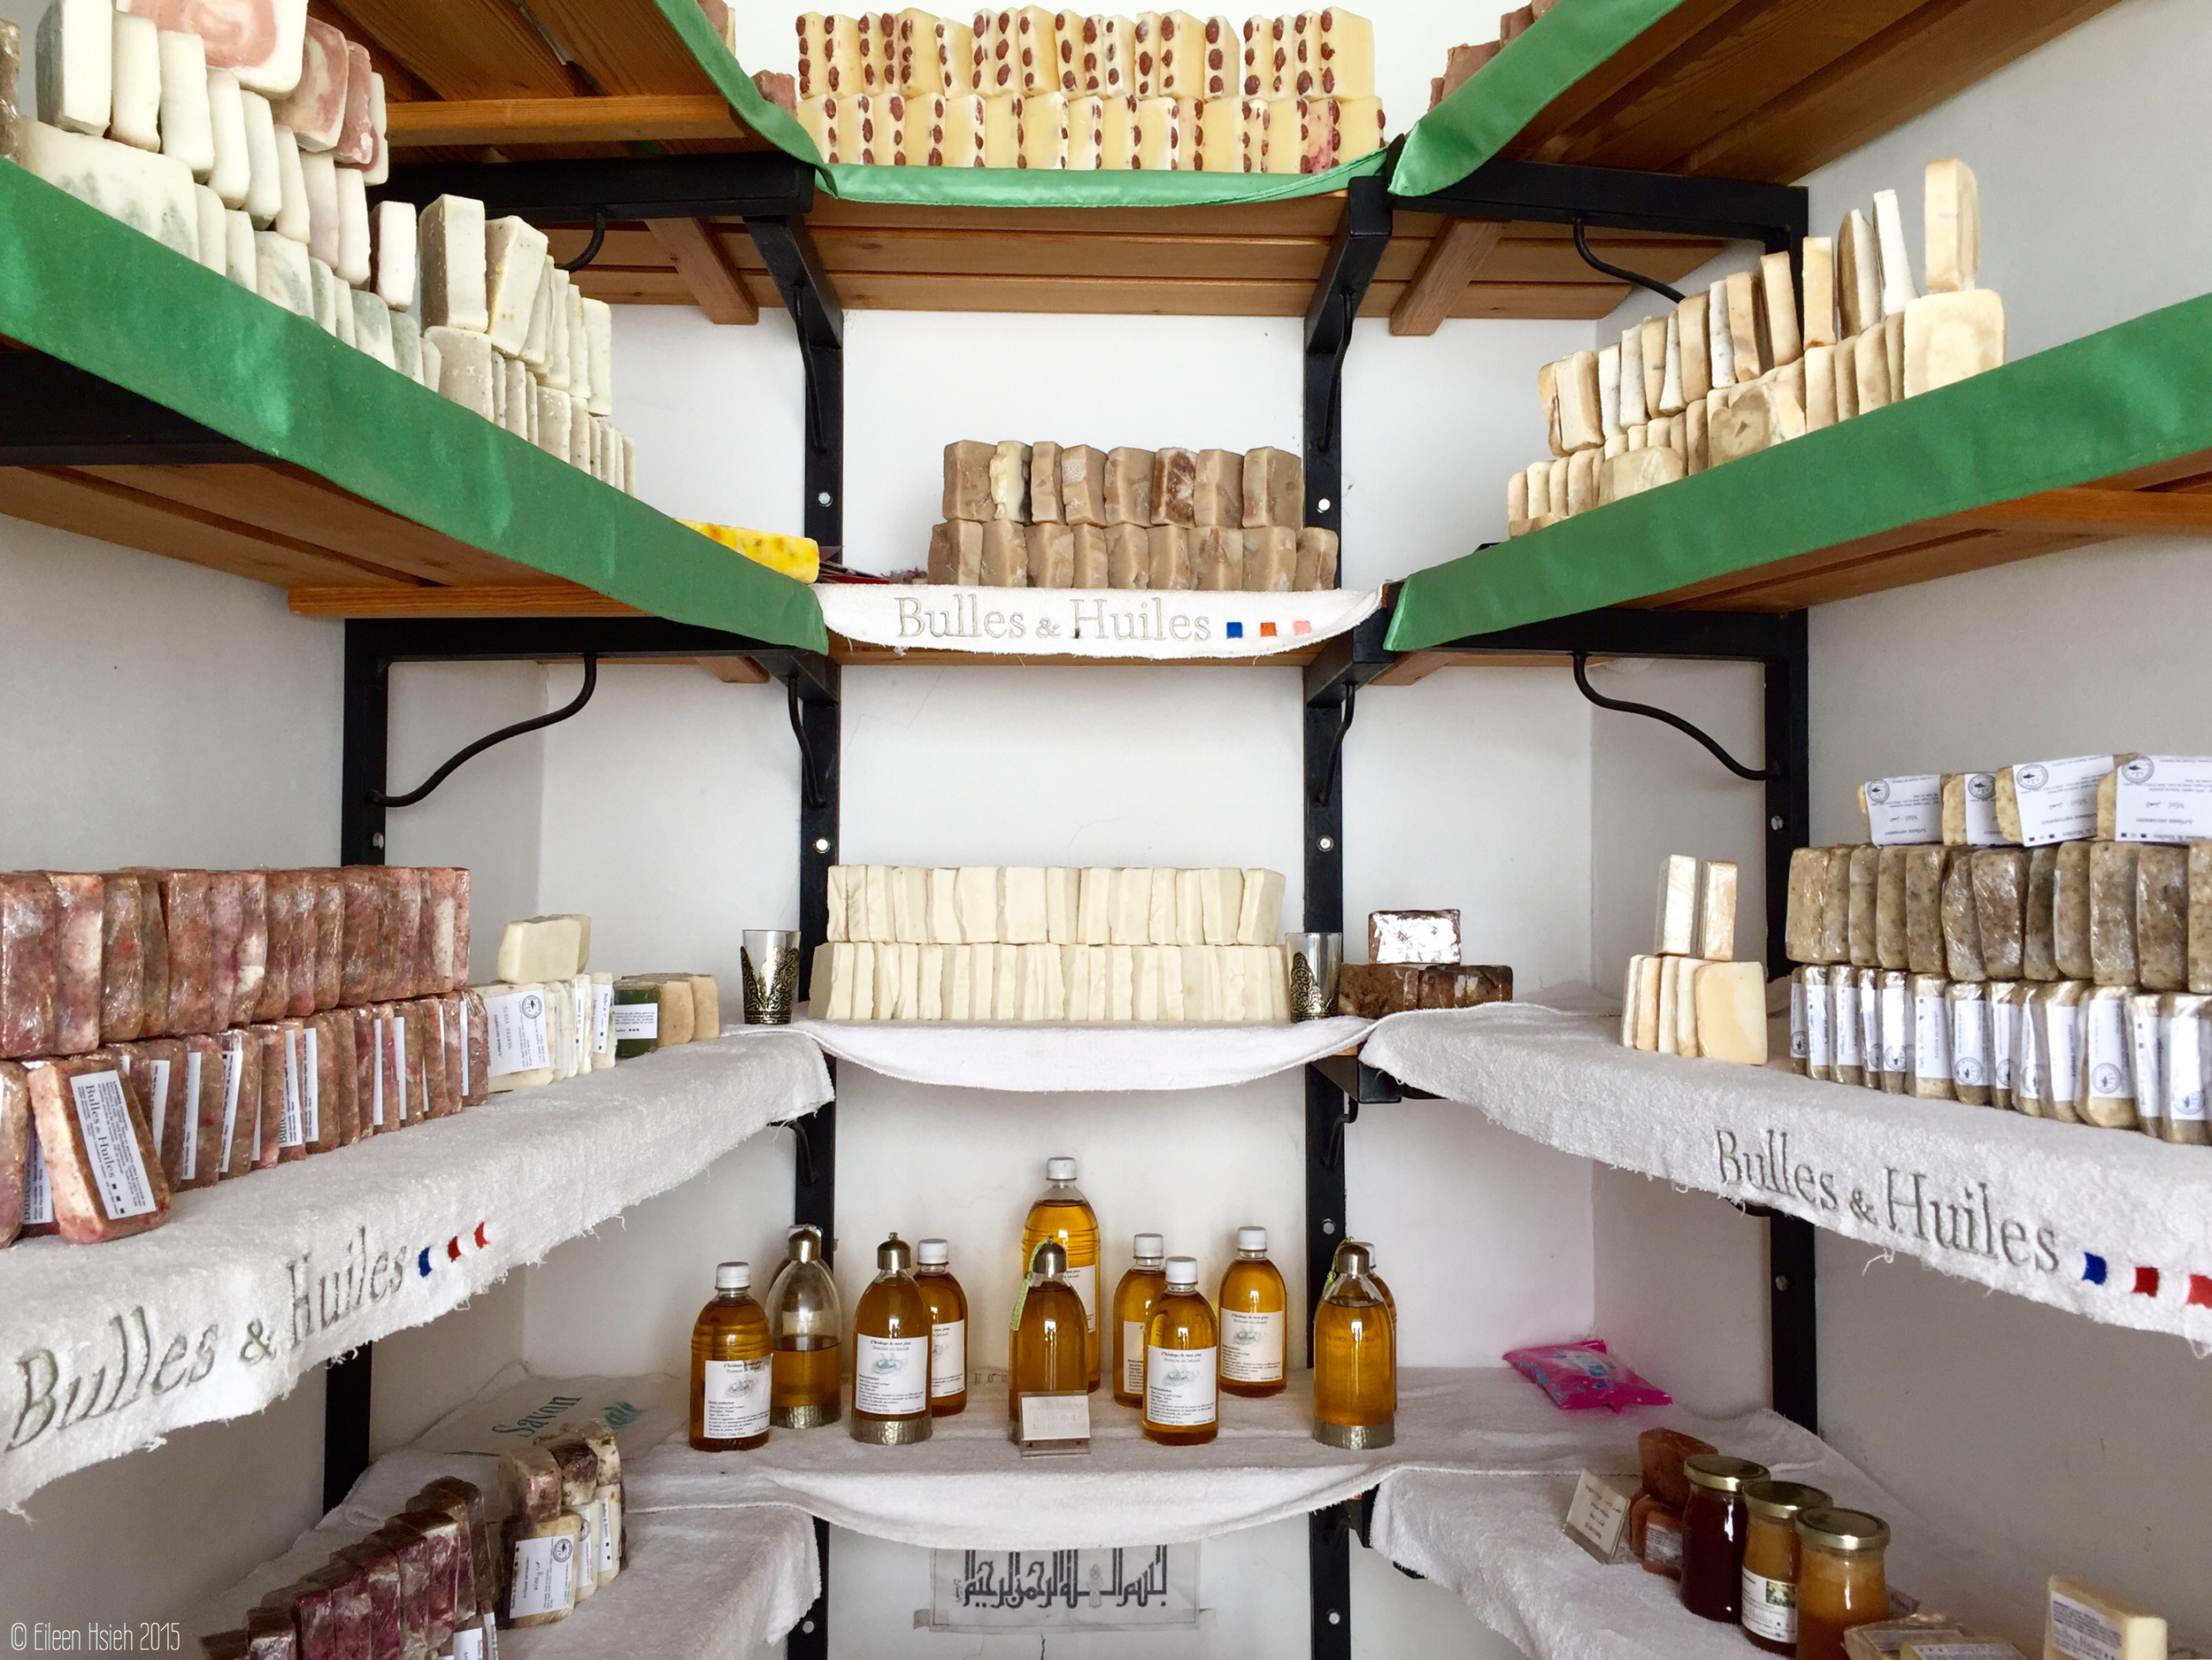 A variety of hand-made soaps and natural or infused argan oils can be found in the shop. 小店裡賣有 多種類的 手工肥皂與堅果油。